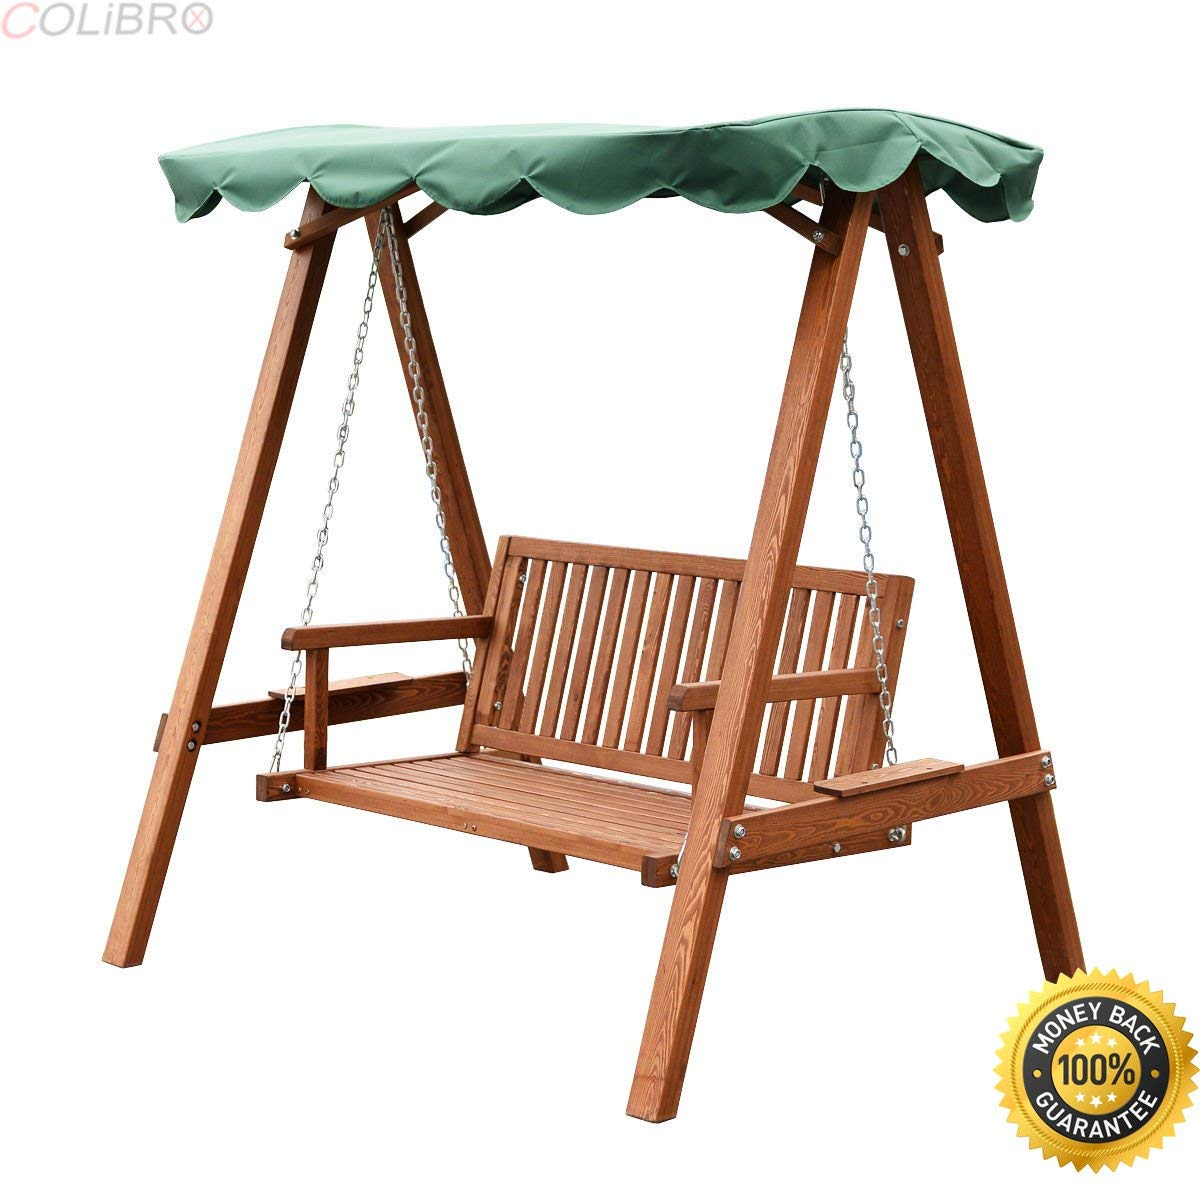 Cheap Wooden Garden Swing Seats Outdoor Furniture, Find For 2 Person Light Teak Oil Wood Outdoor Swings (View 5 of 25)